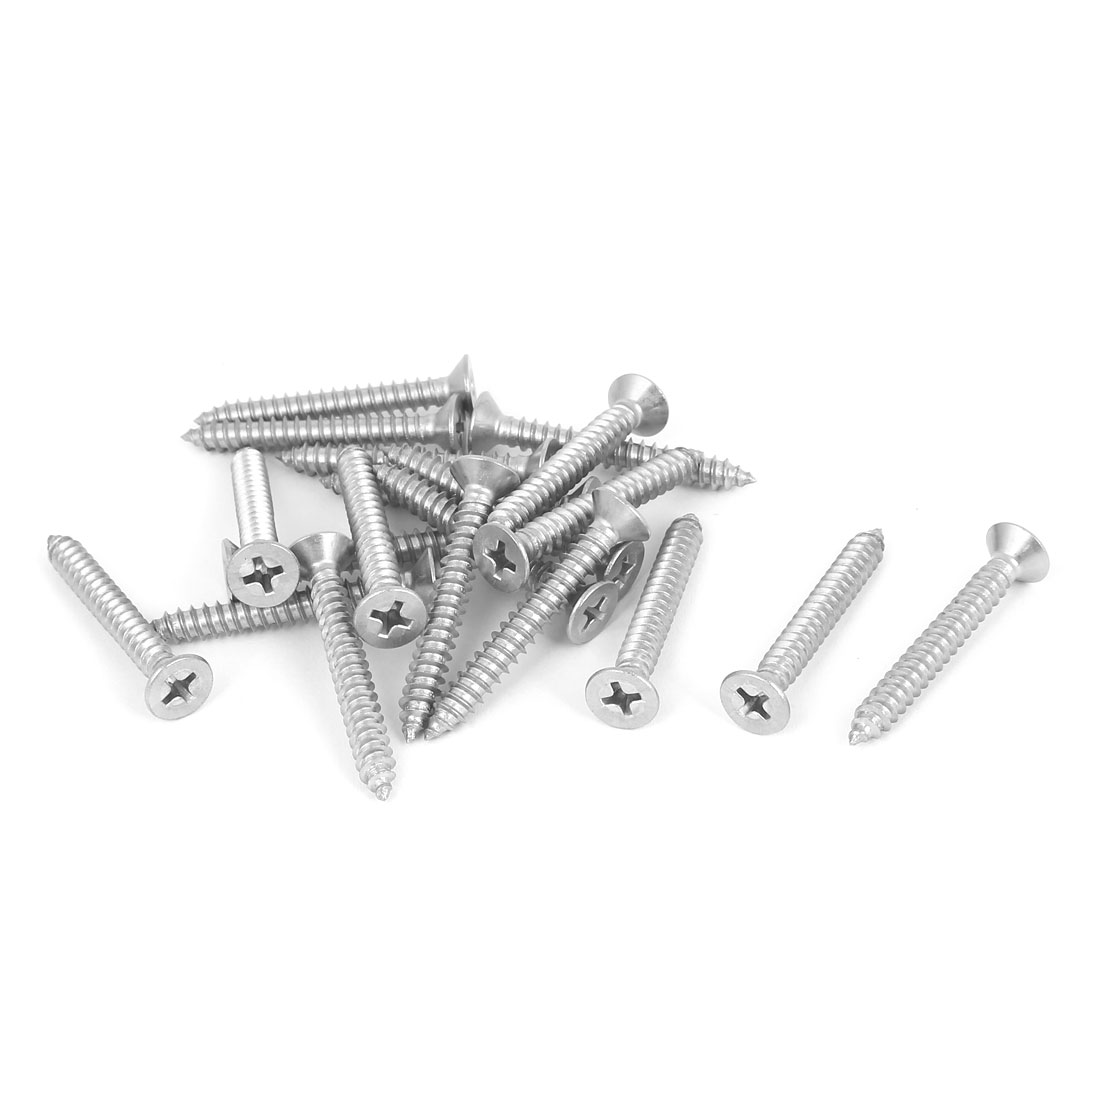 M4.8x38mm 316 Stainless Steel Flat Head Phillips Self Tapping Screws Bolts 20pcs